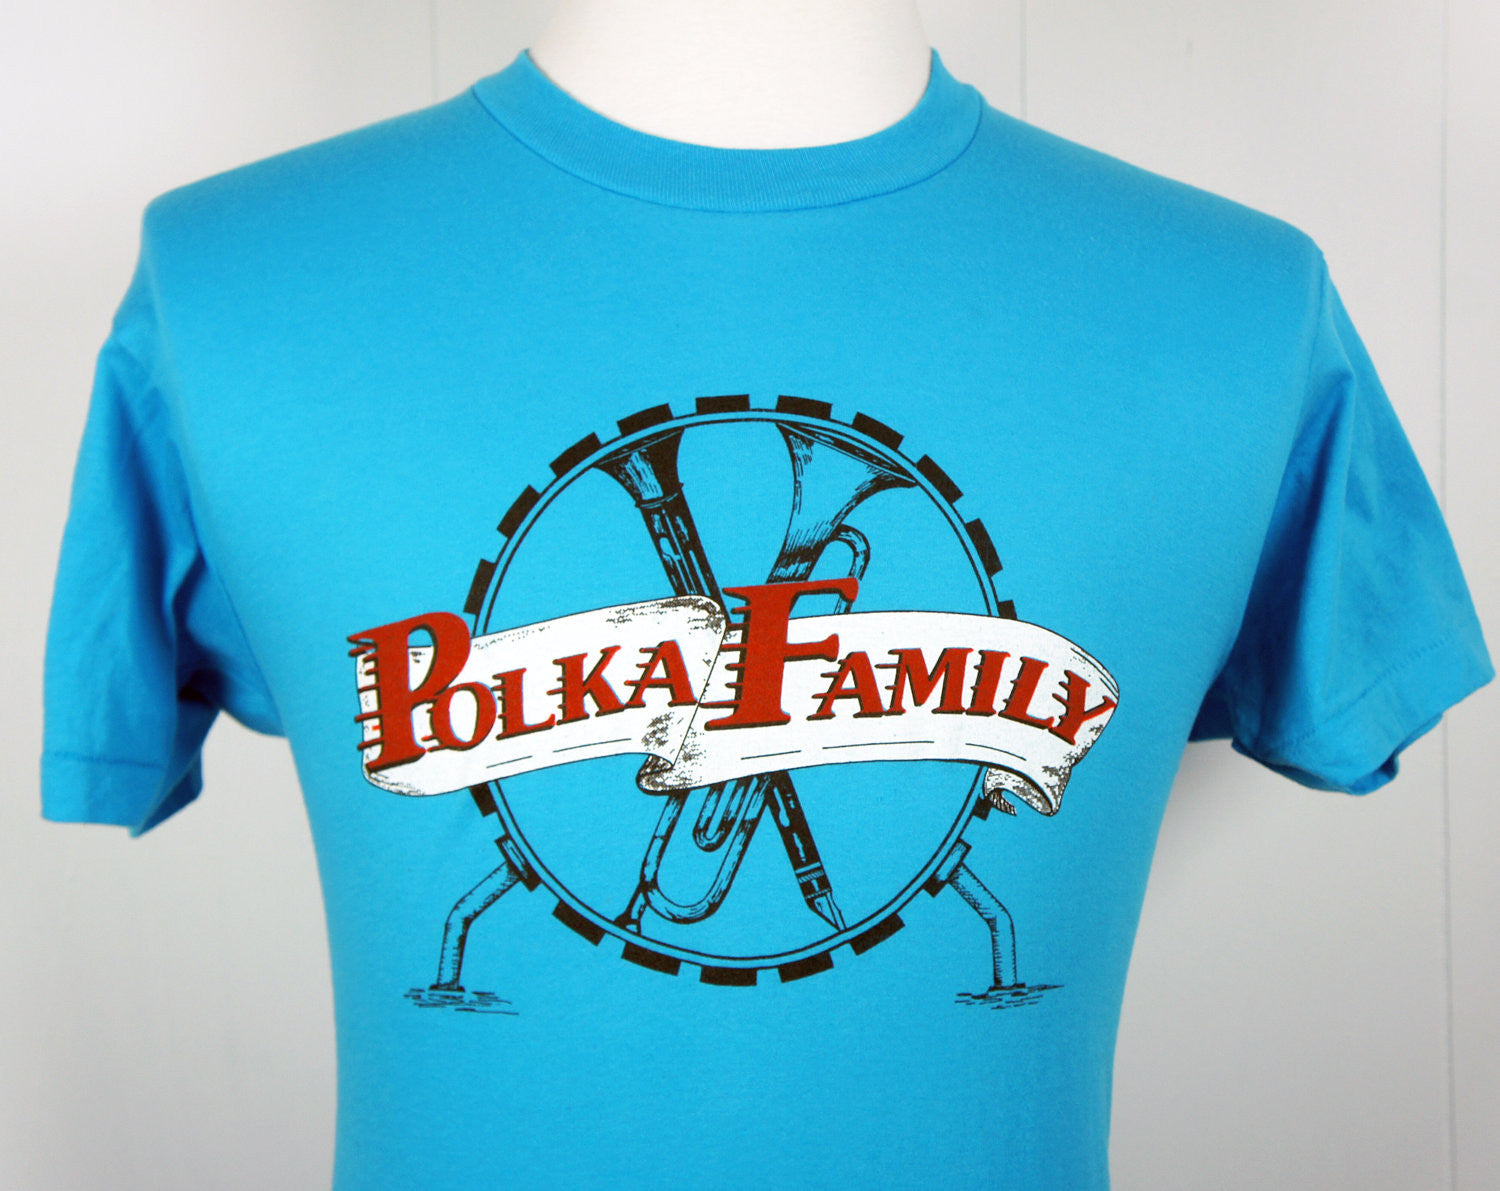 1980's Polka Family Band T-Shirt - Size M